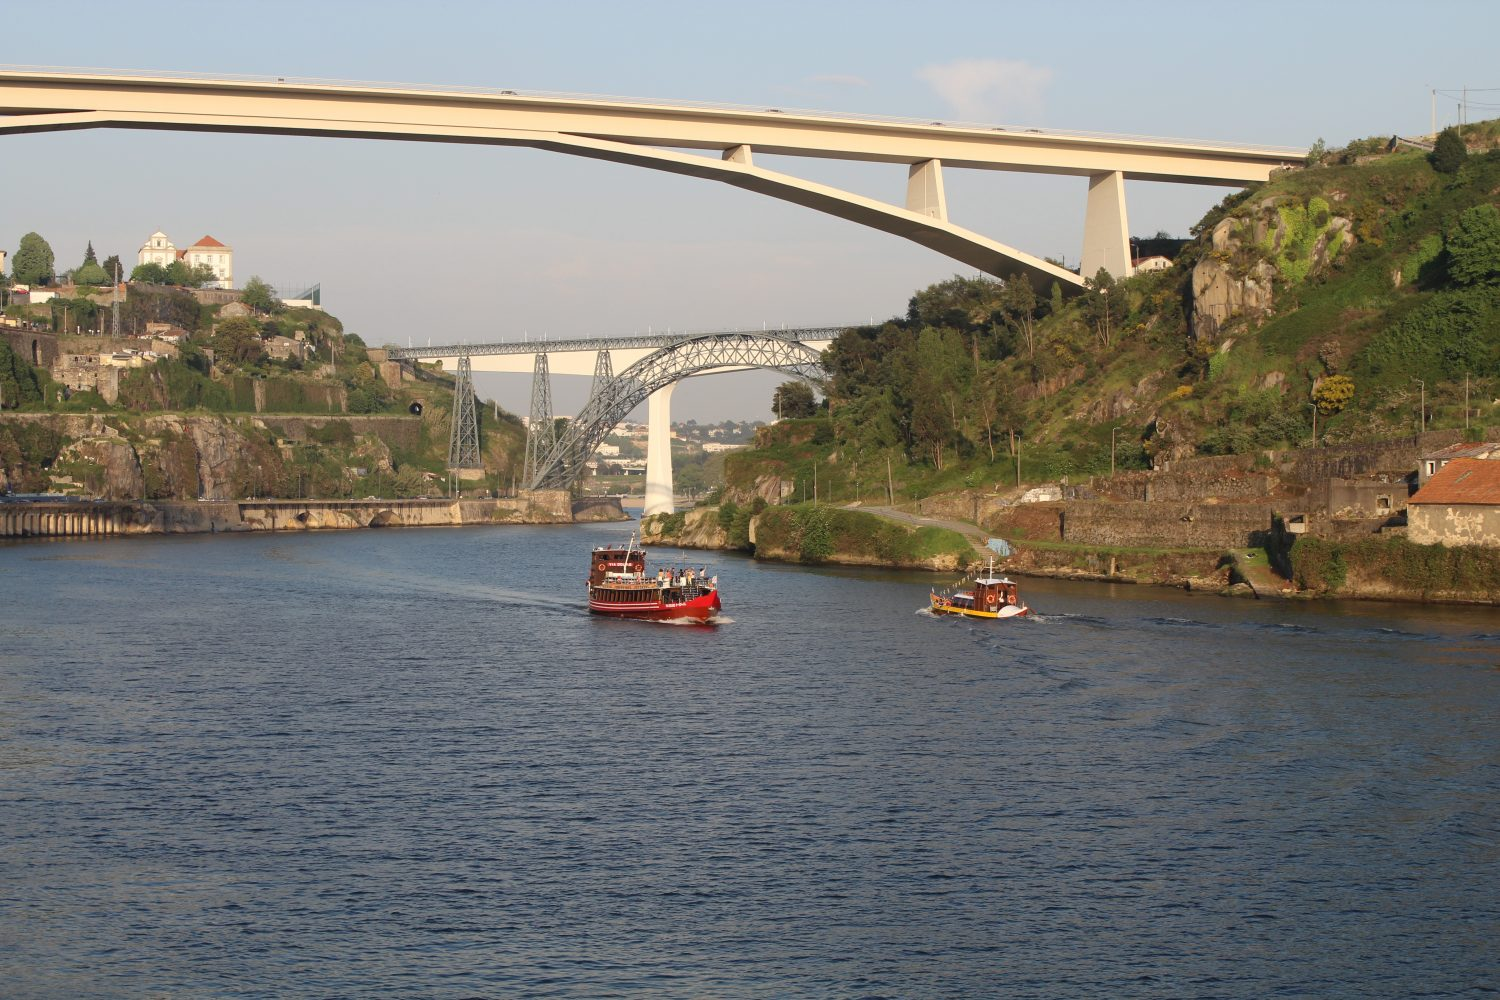 Douro cruise with lunch or dinner on board passing over the bridge